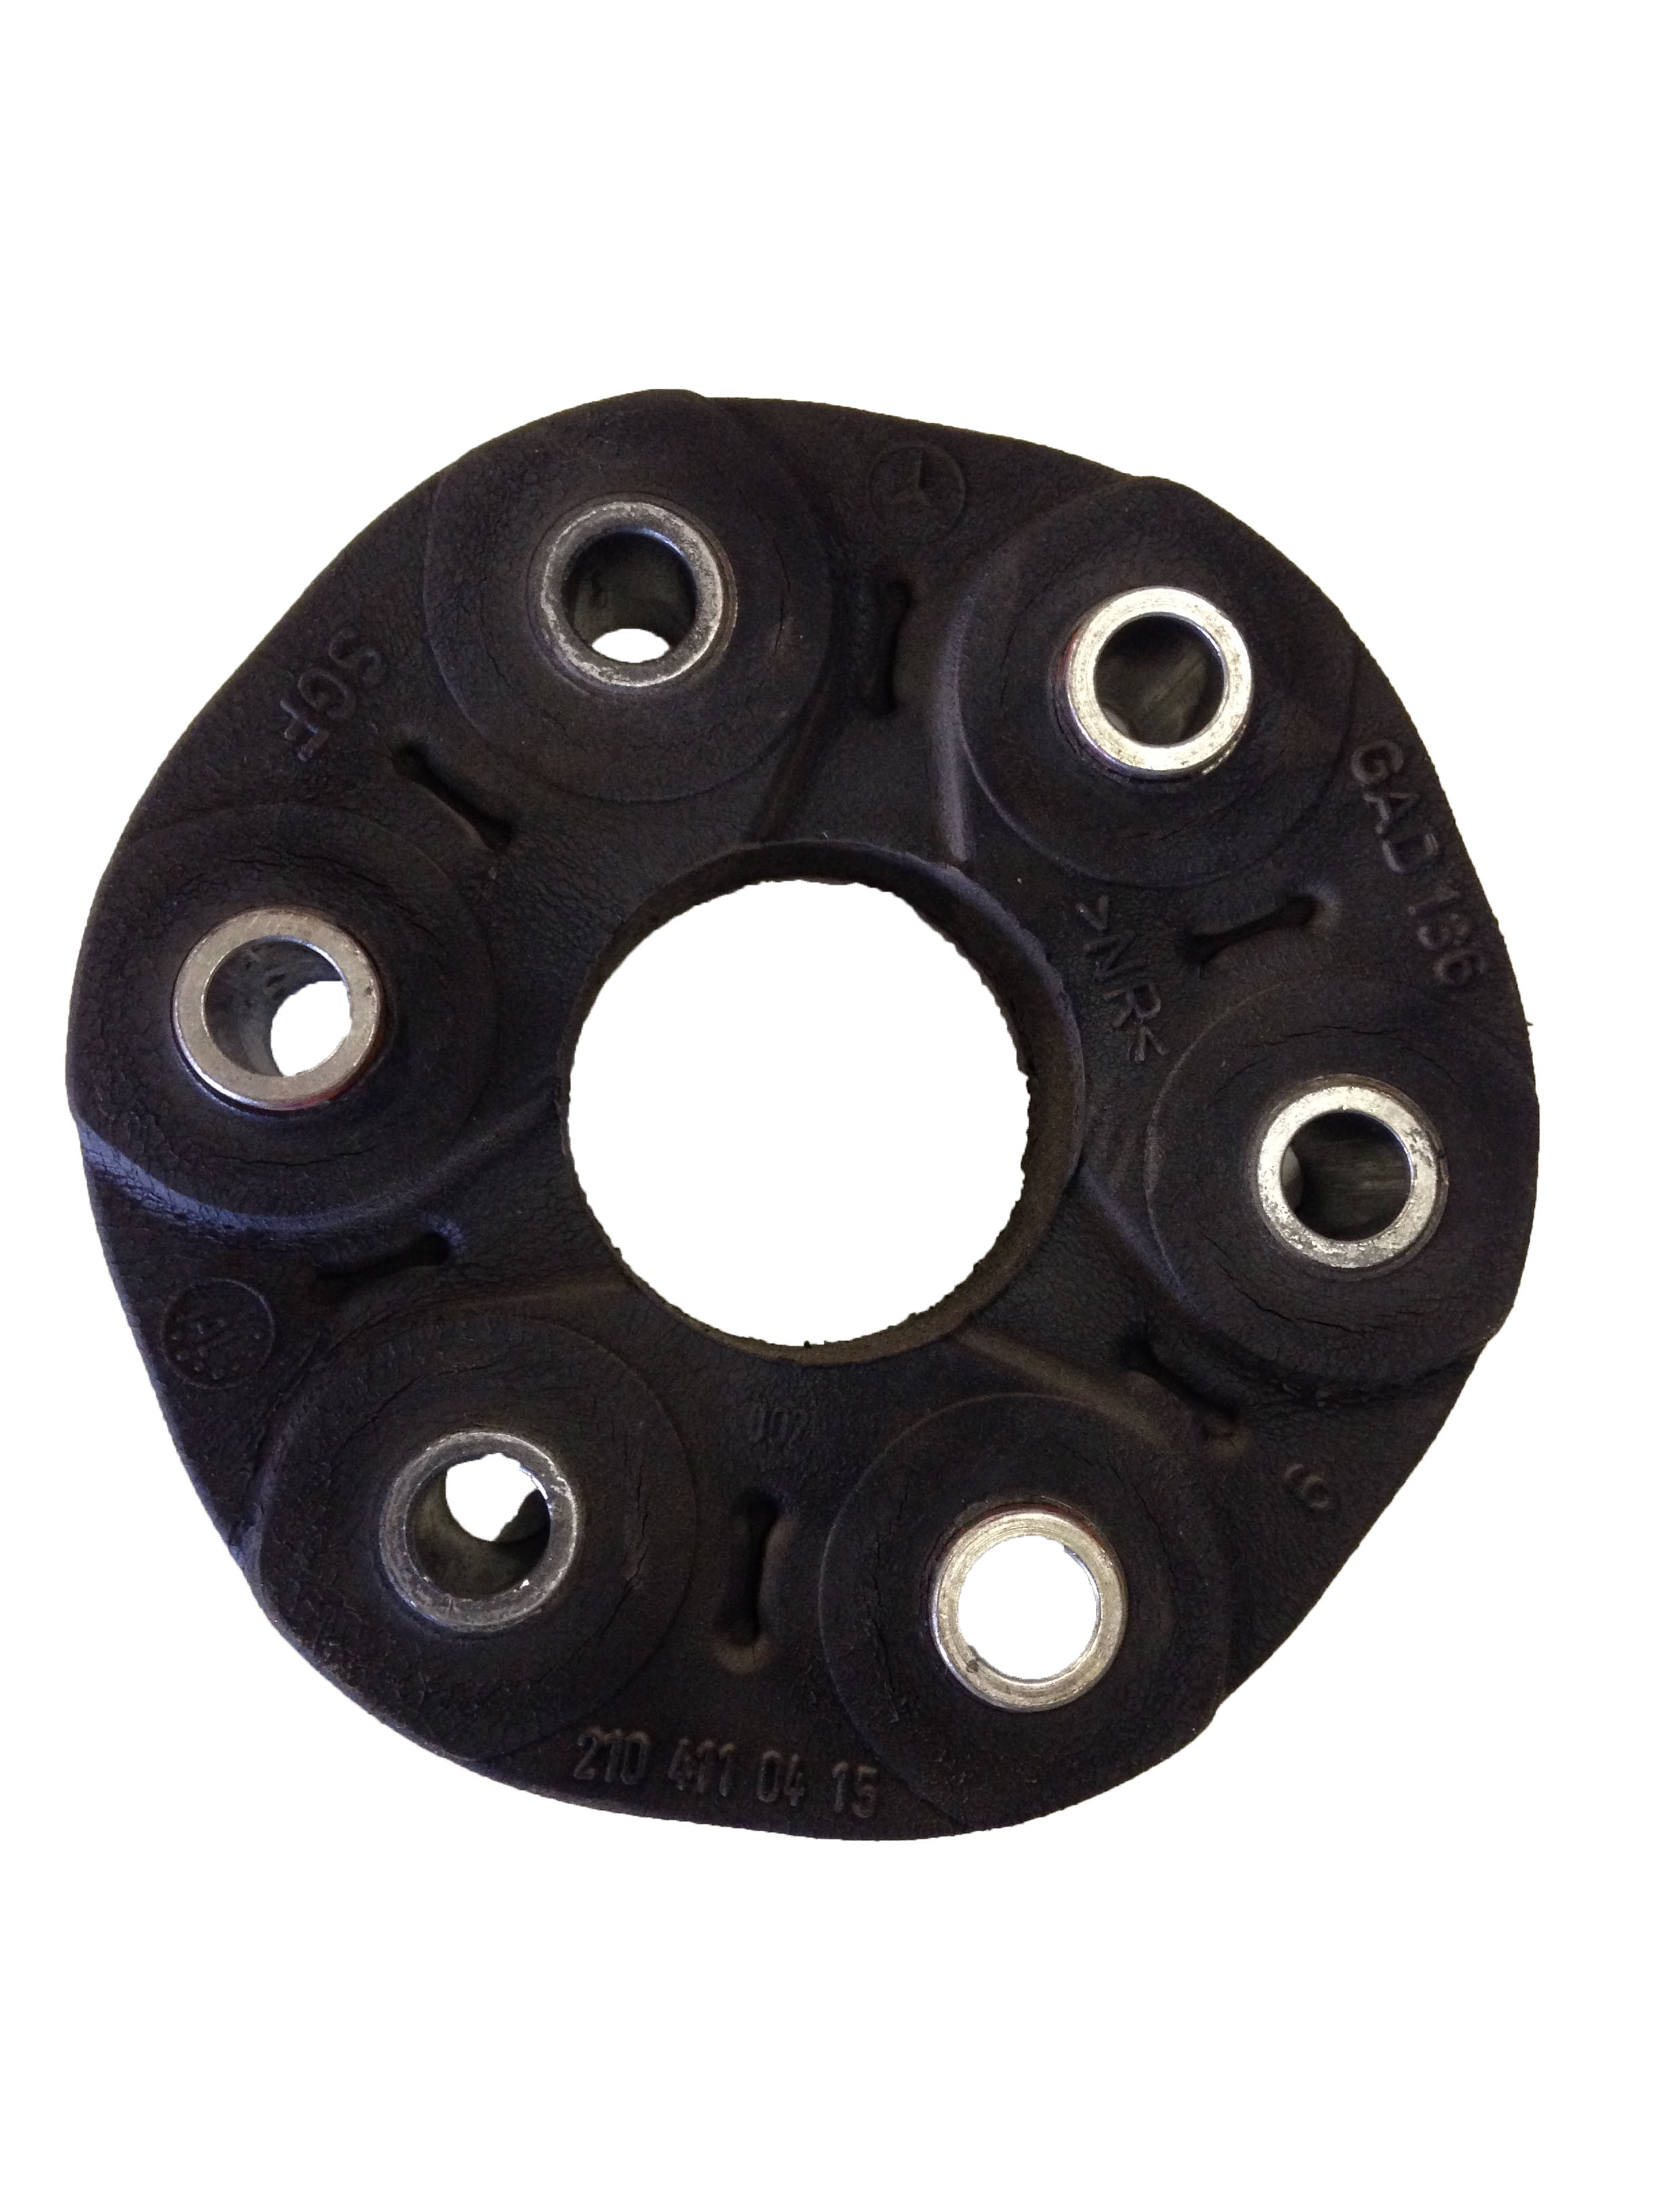 Mercedes benz w203 w211 drive shaft flex disc 2104110415 for Flex disk mercedes benz